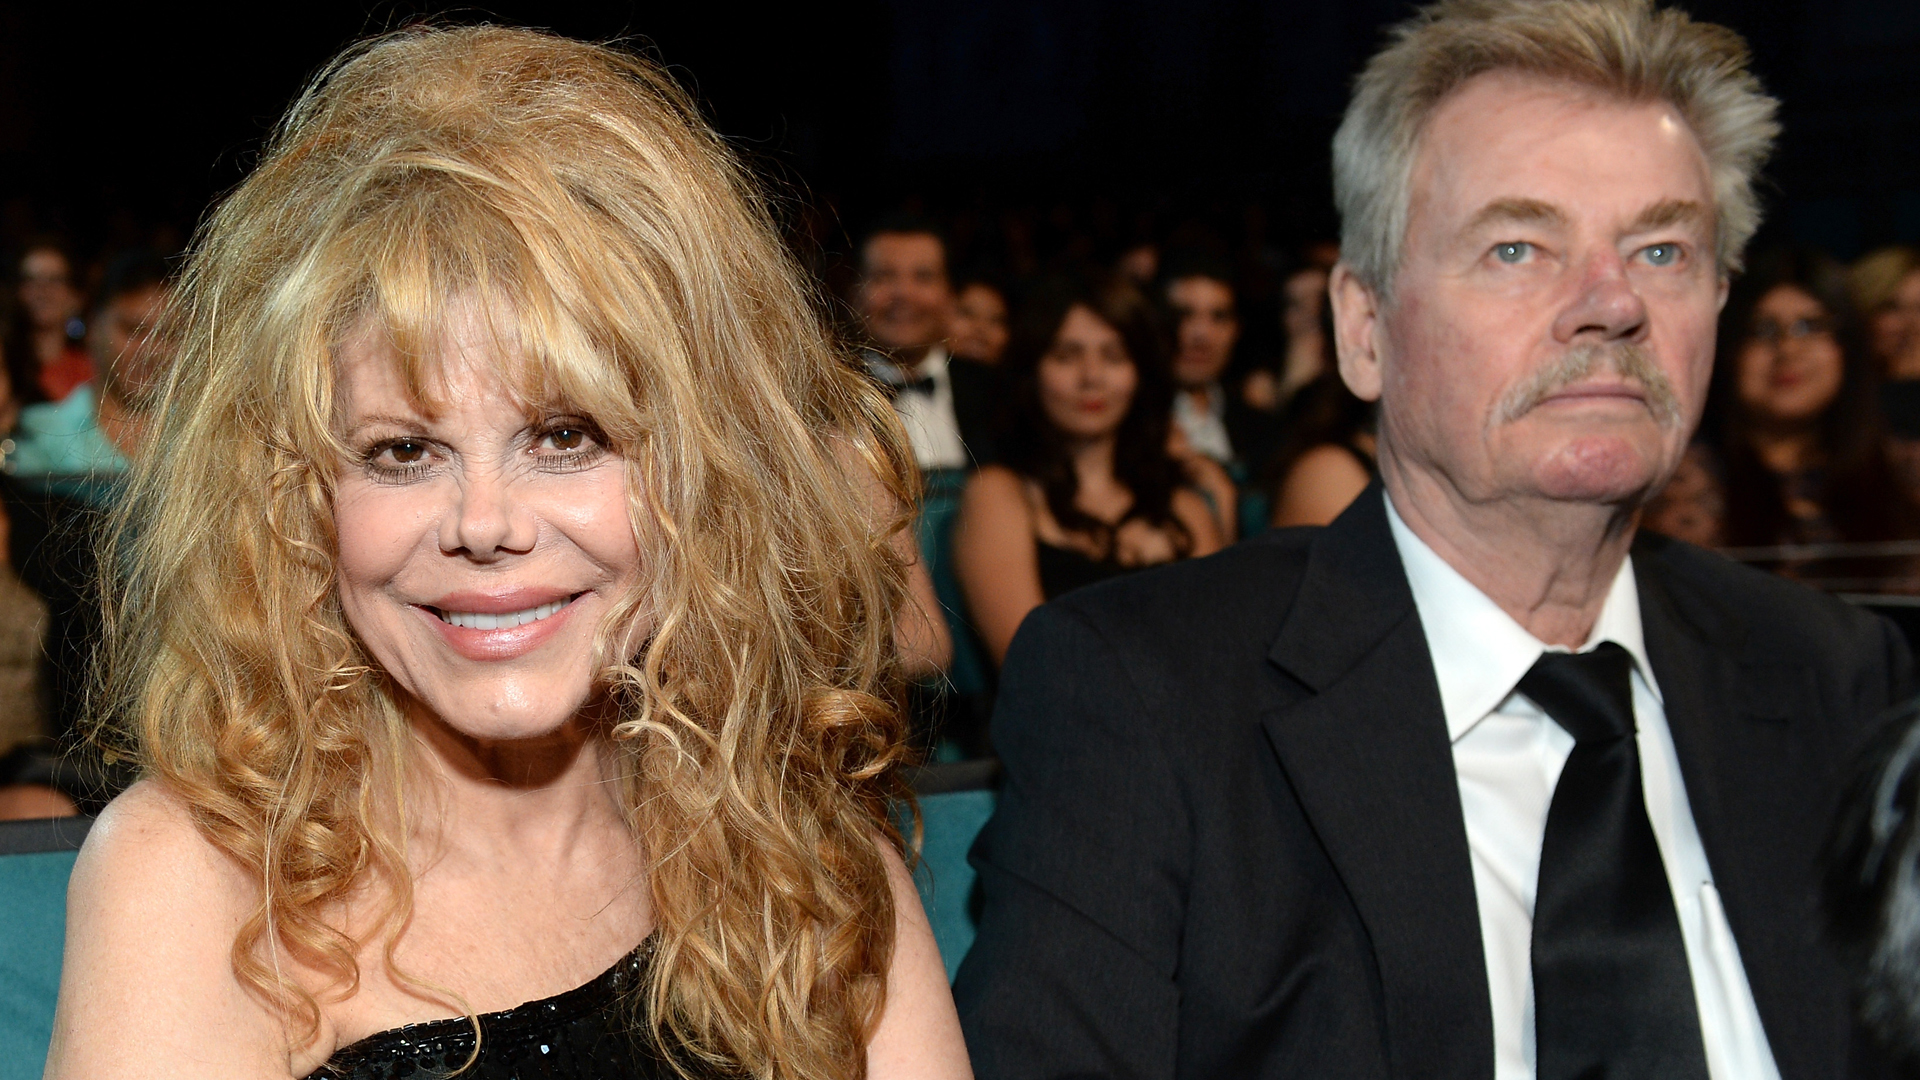 Singer Charo and her husband Kjell Rasten attend the 2013 NCLR ALMA Awards at Pasadena Civic Auditorium on Sept. 27, 2013, in Pasadena. (Credit: Michael Kovac/Getty Images for NCLR)